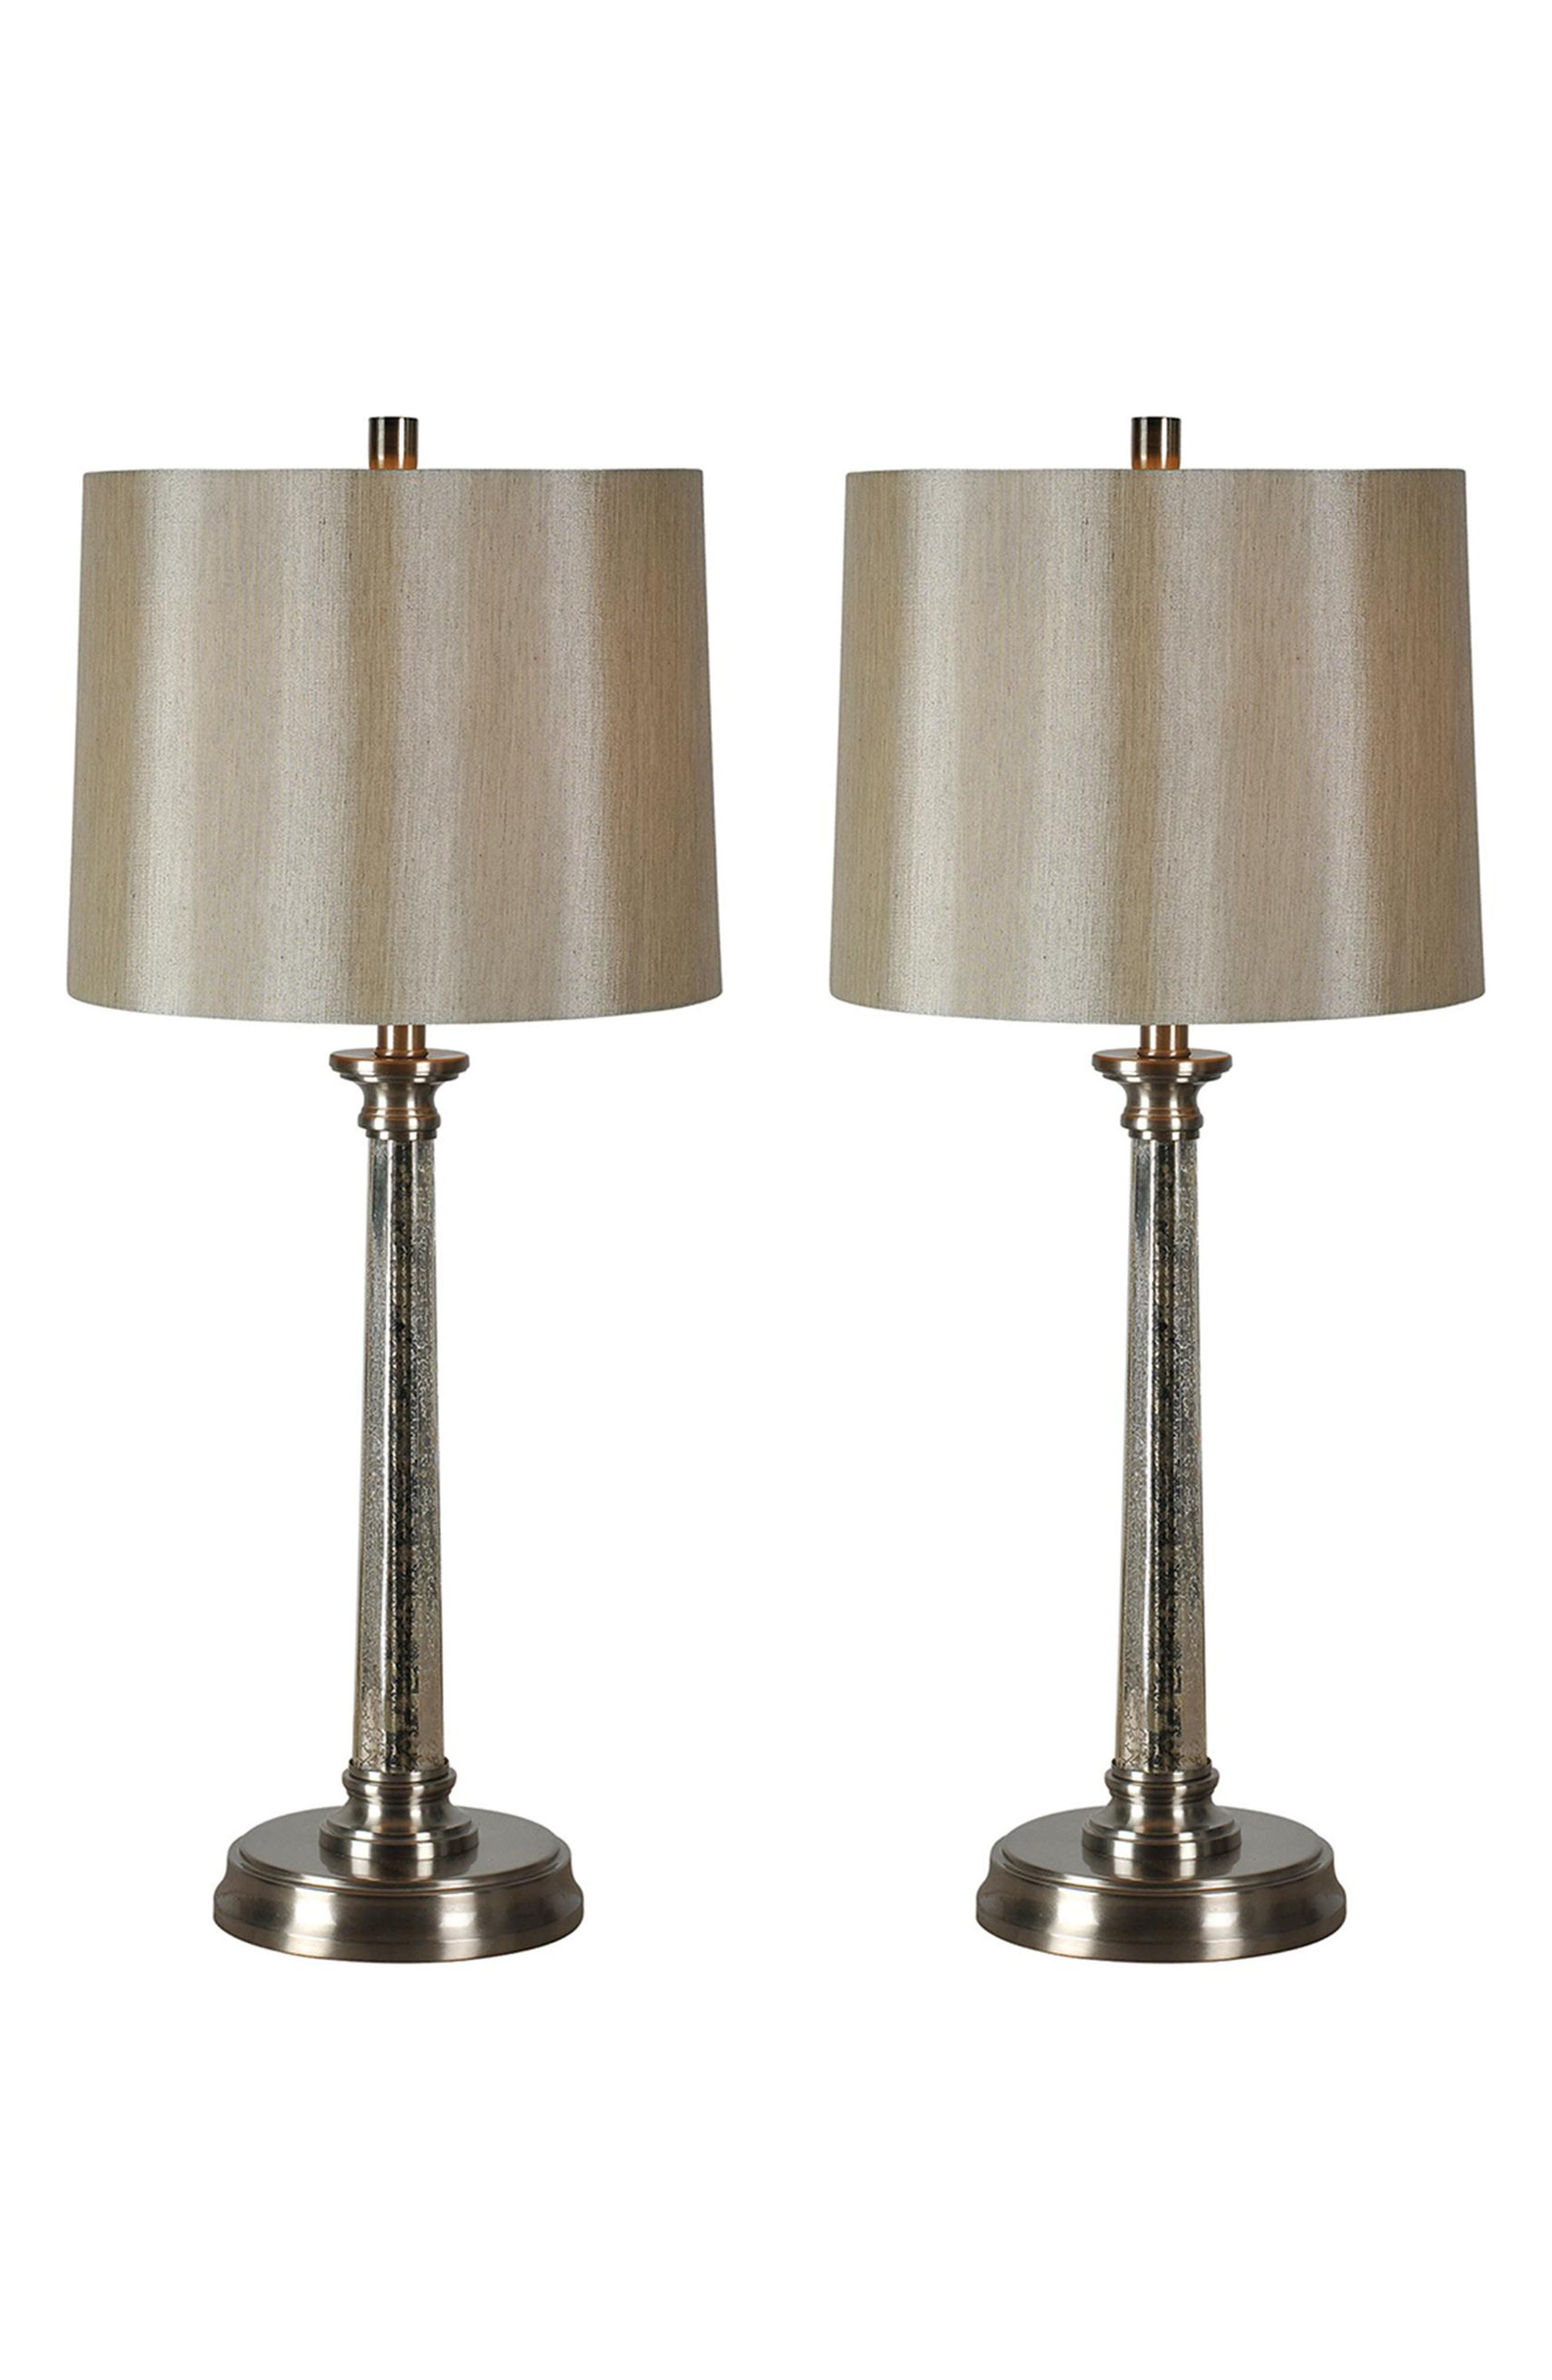 Brooks Set of 2 Table Lamps,                             Main thumbnail 1, color,                             Satin Nickel